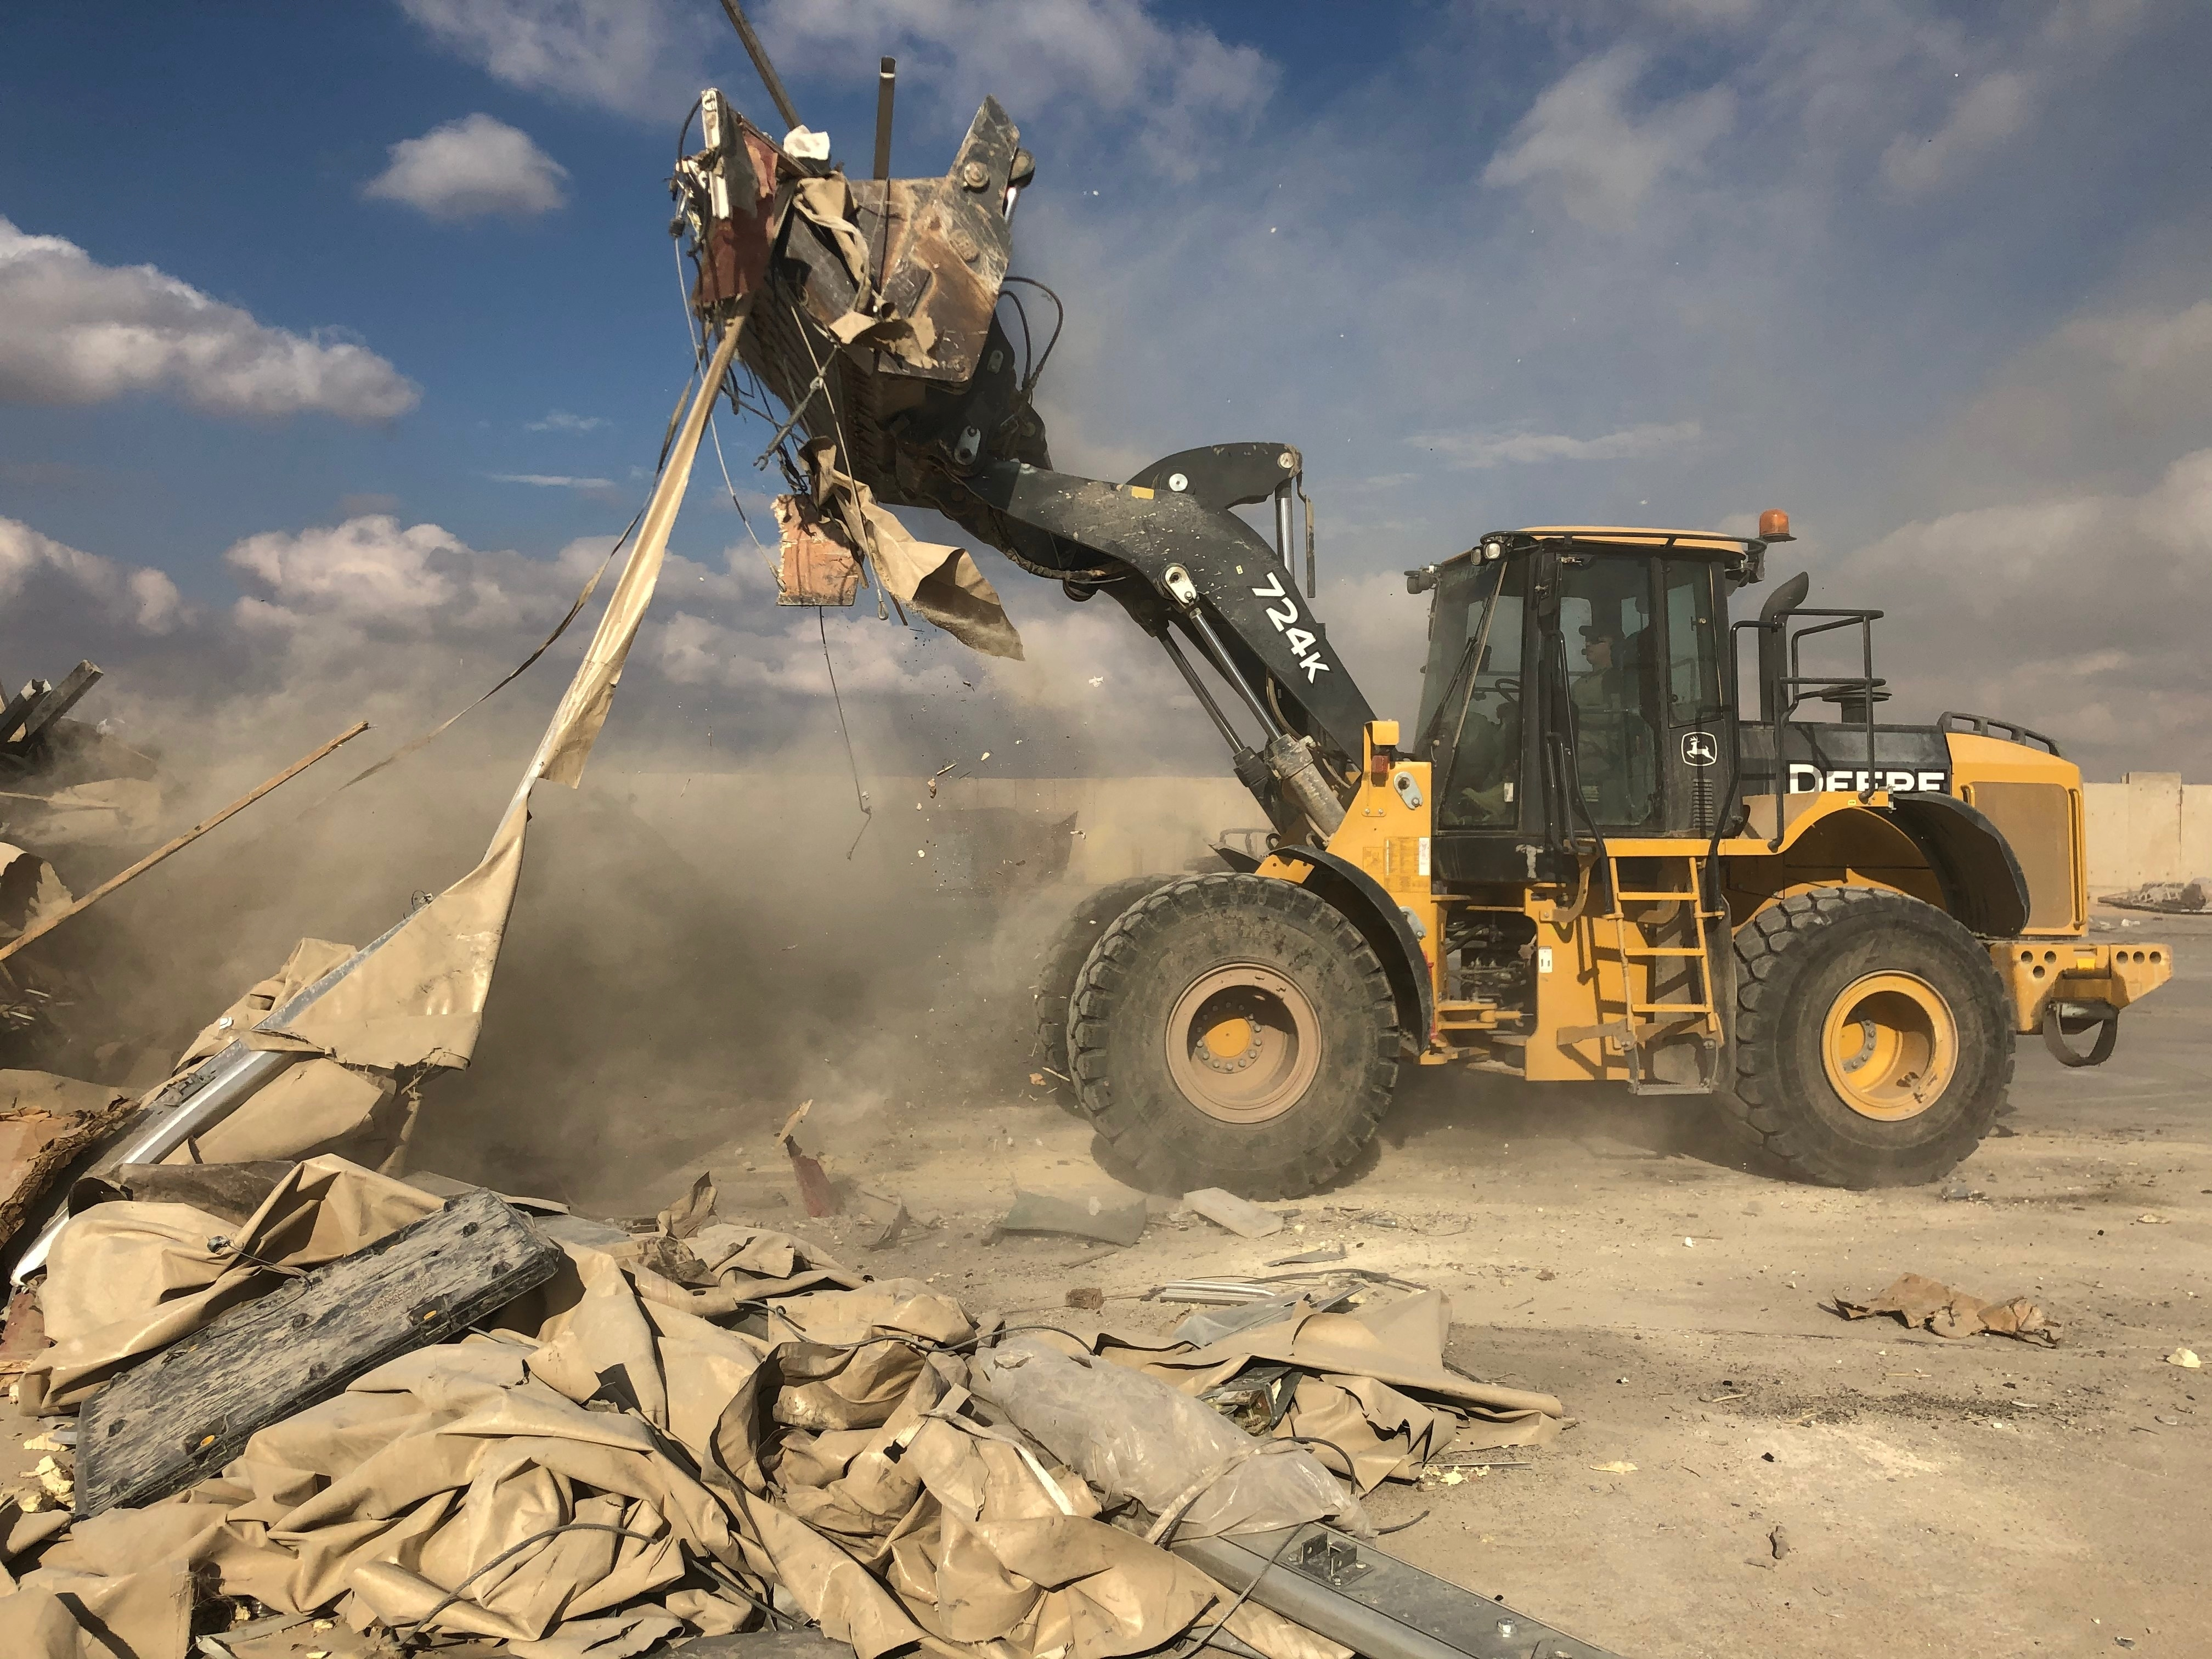 A bulldozer clears rubble and debris at Ain al-Asad air base in Anbar, Iraq, Monday, Jan. 13, 2020. Ain al-Asad air base was struck by a barrage of Iranian missiles on Wednesday, in retaliation for the U.S. drone strike that killed atop Iranian commander, Gen. Qassem Soleimani, whose killing raised fears of a wider war in the Middle East.